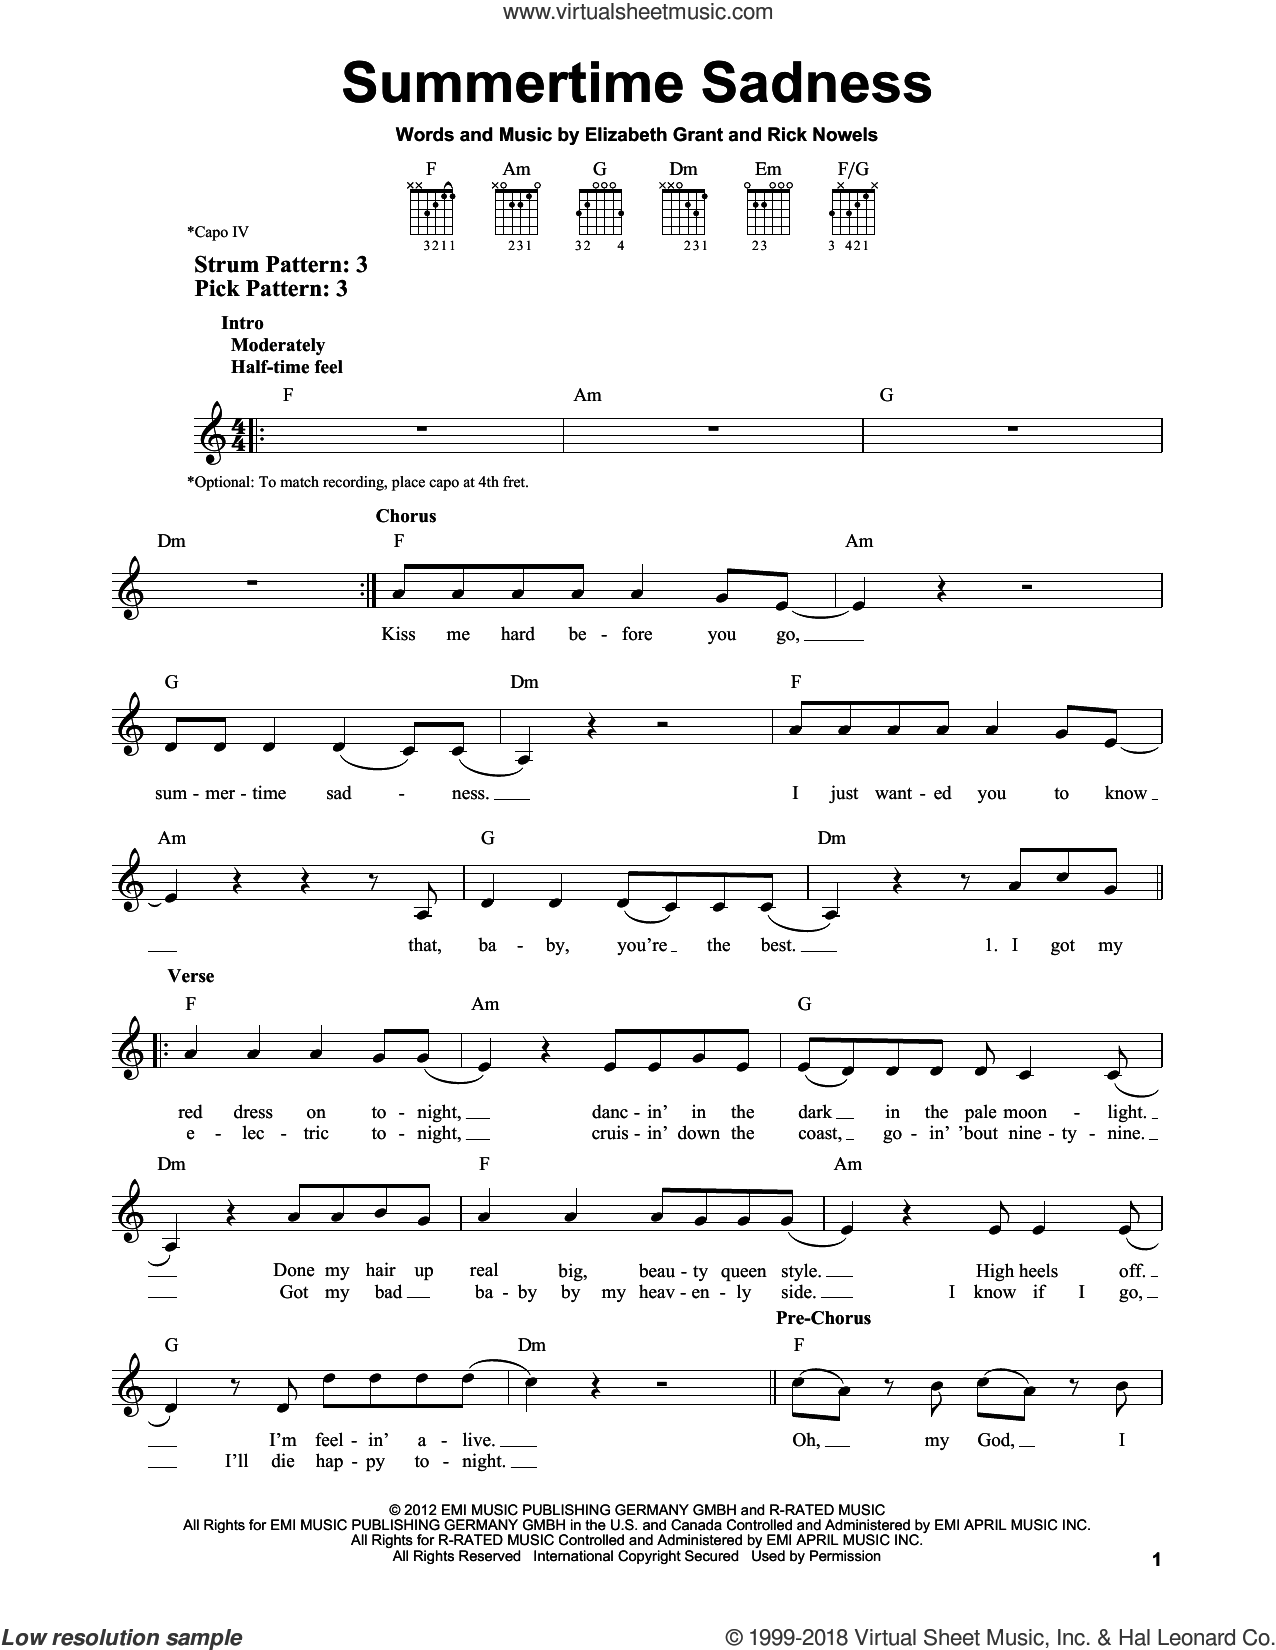 Summertime Sadness sheet music for guitar solo (chords) by Rick Nowels